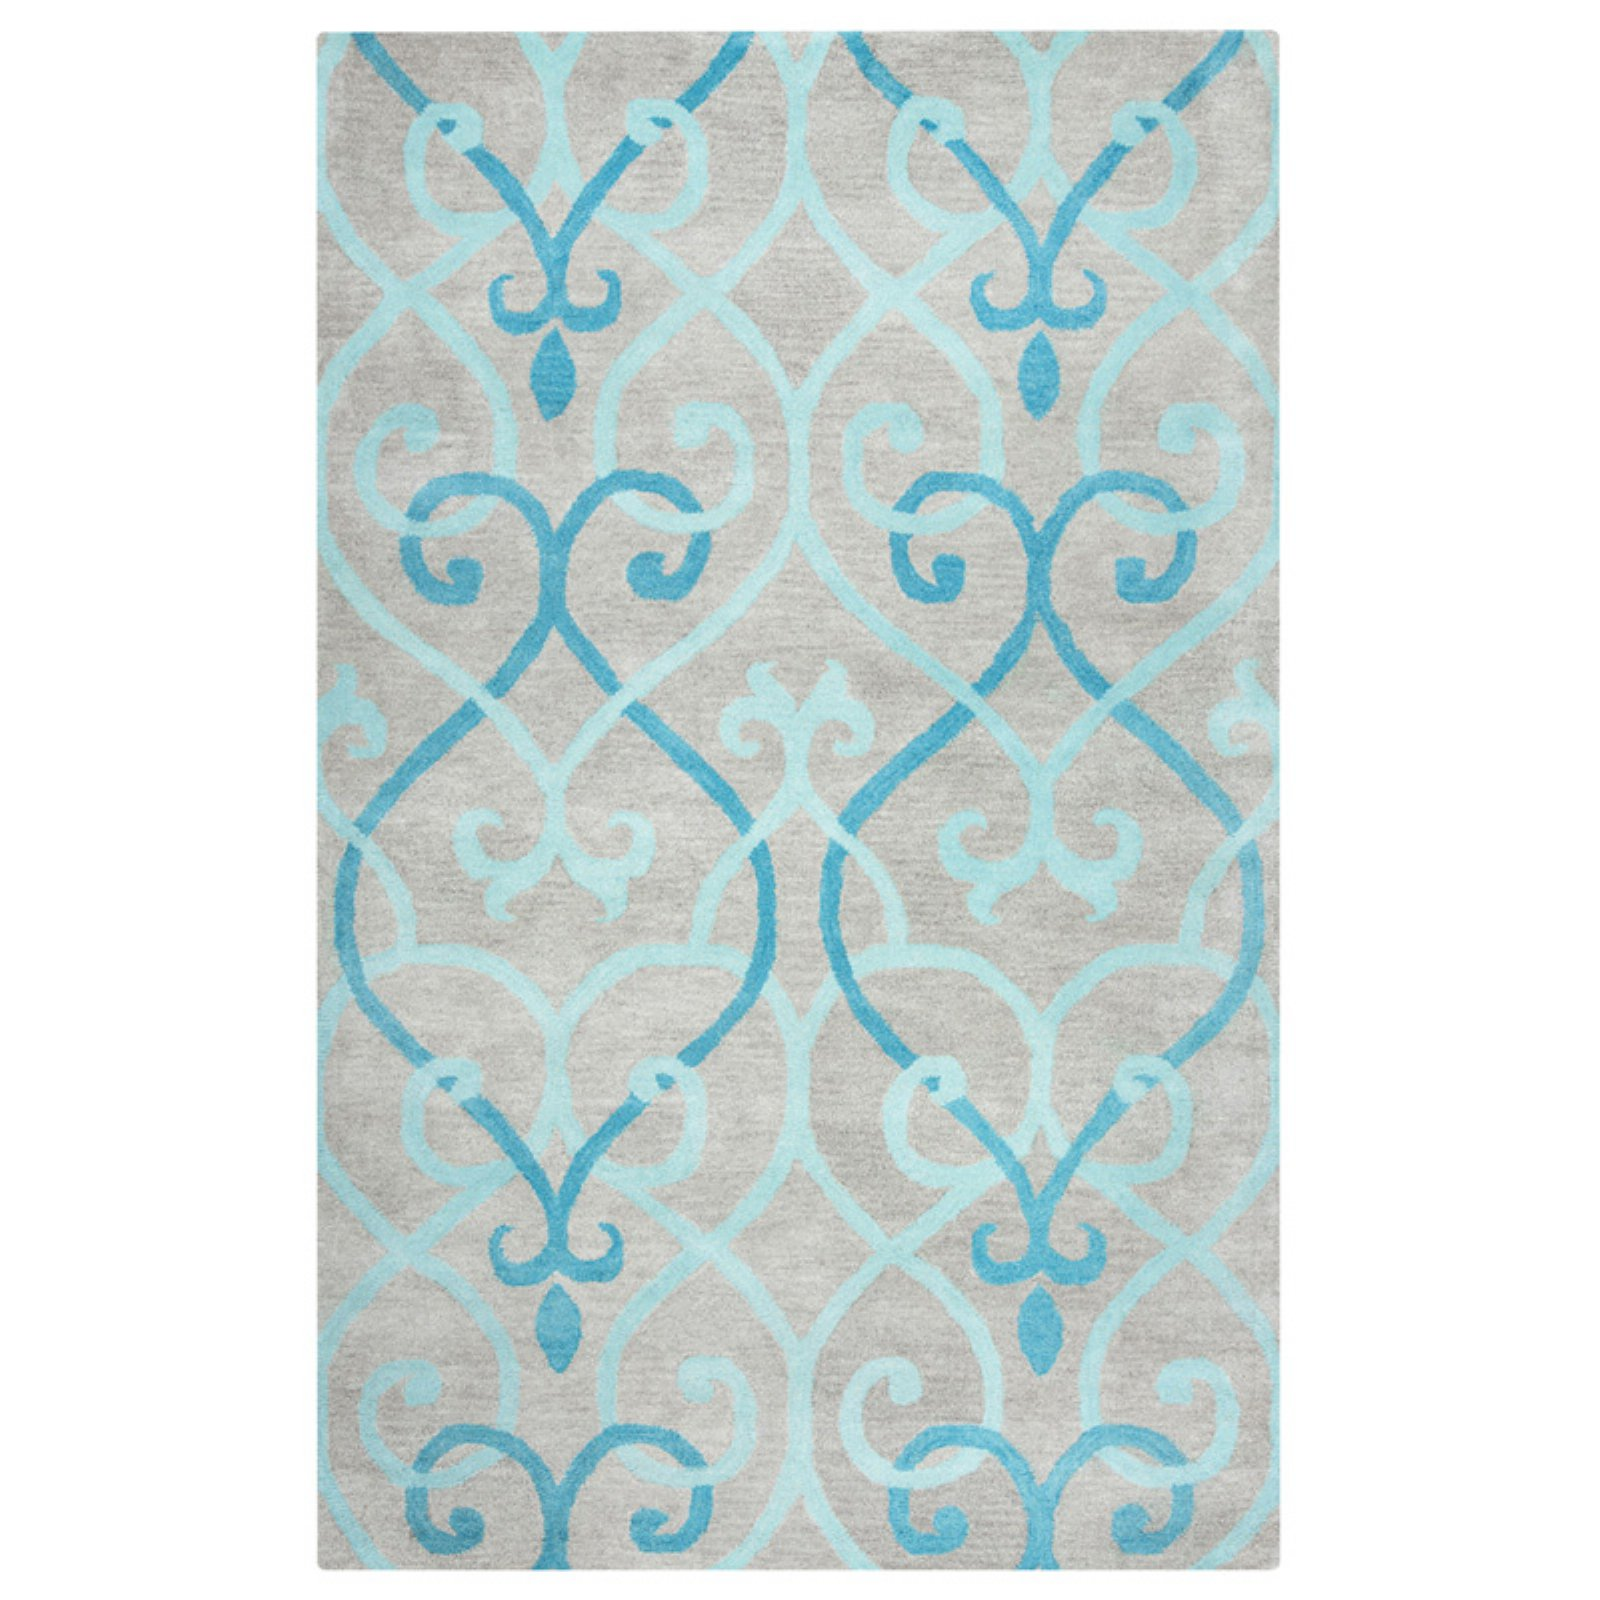 Rizzy Home Bradberry Downs Hand-Tufted Area Rug 8 Ft. X 8 Ft. Round Blue Model BBDBD8863T20008RD